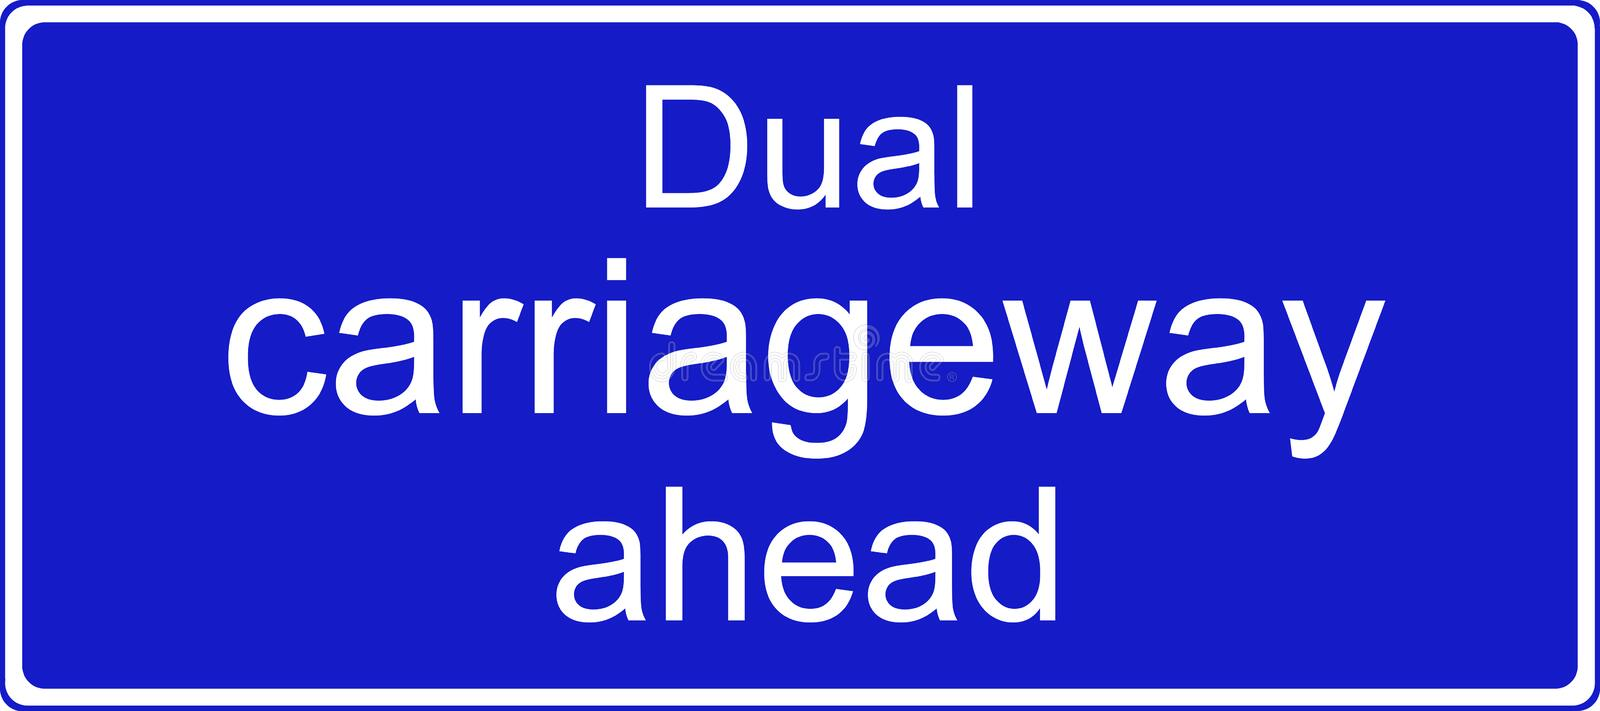 Download Dual Carriageway Ahead Sign Stock Illustration - Illustration: 38358706